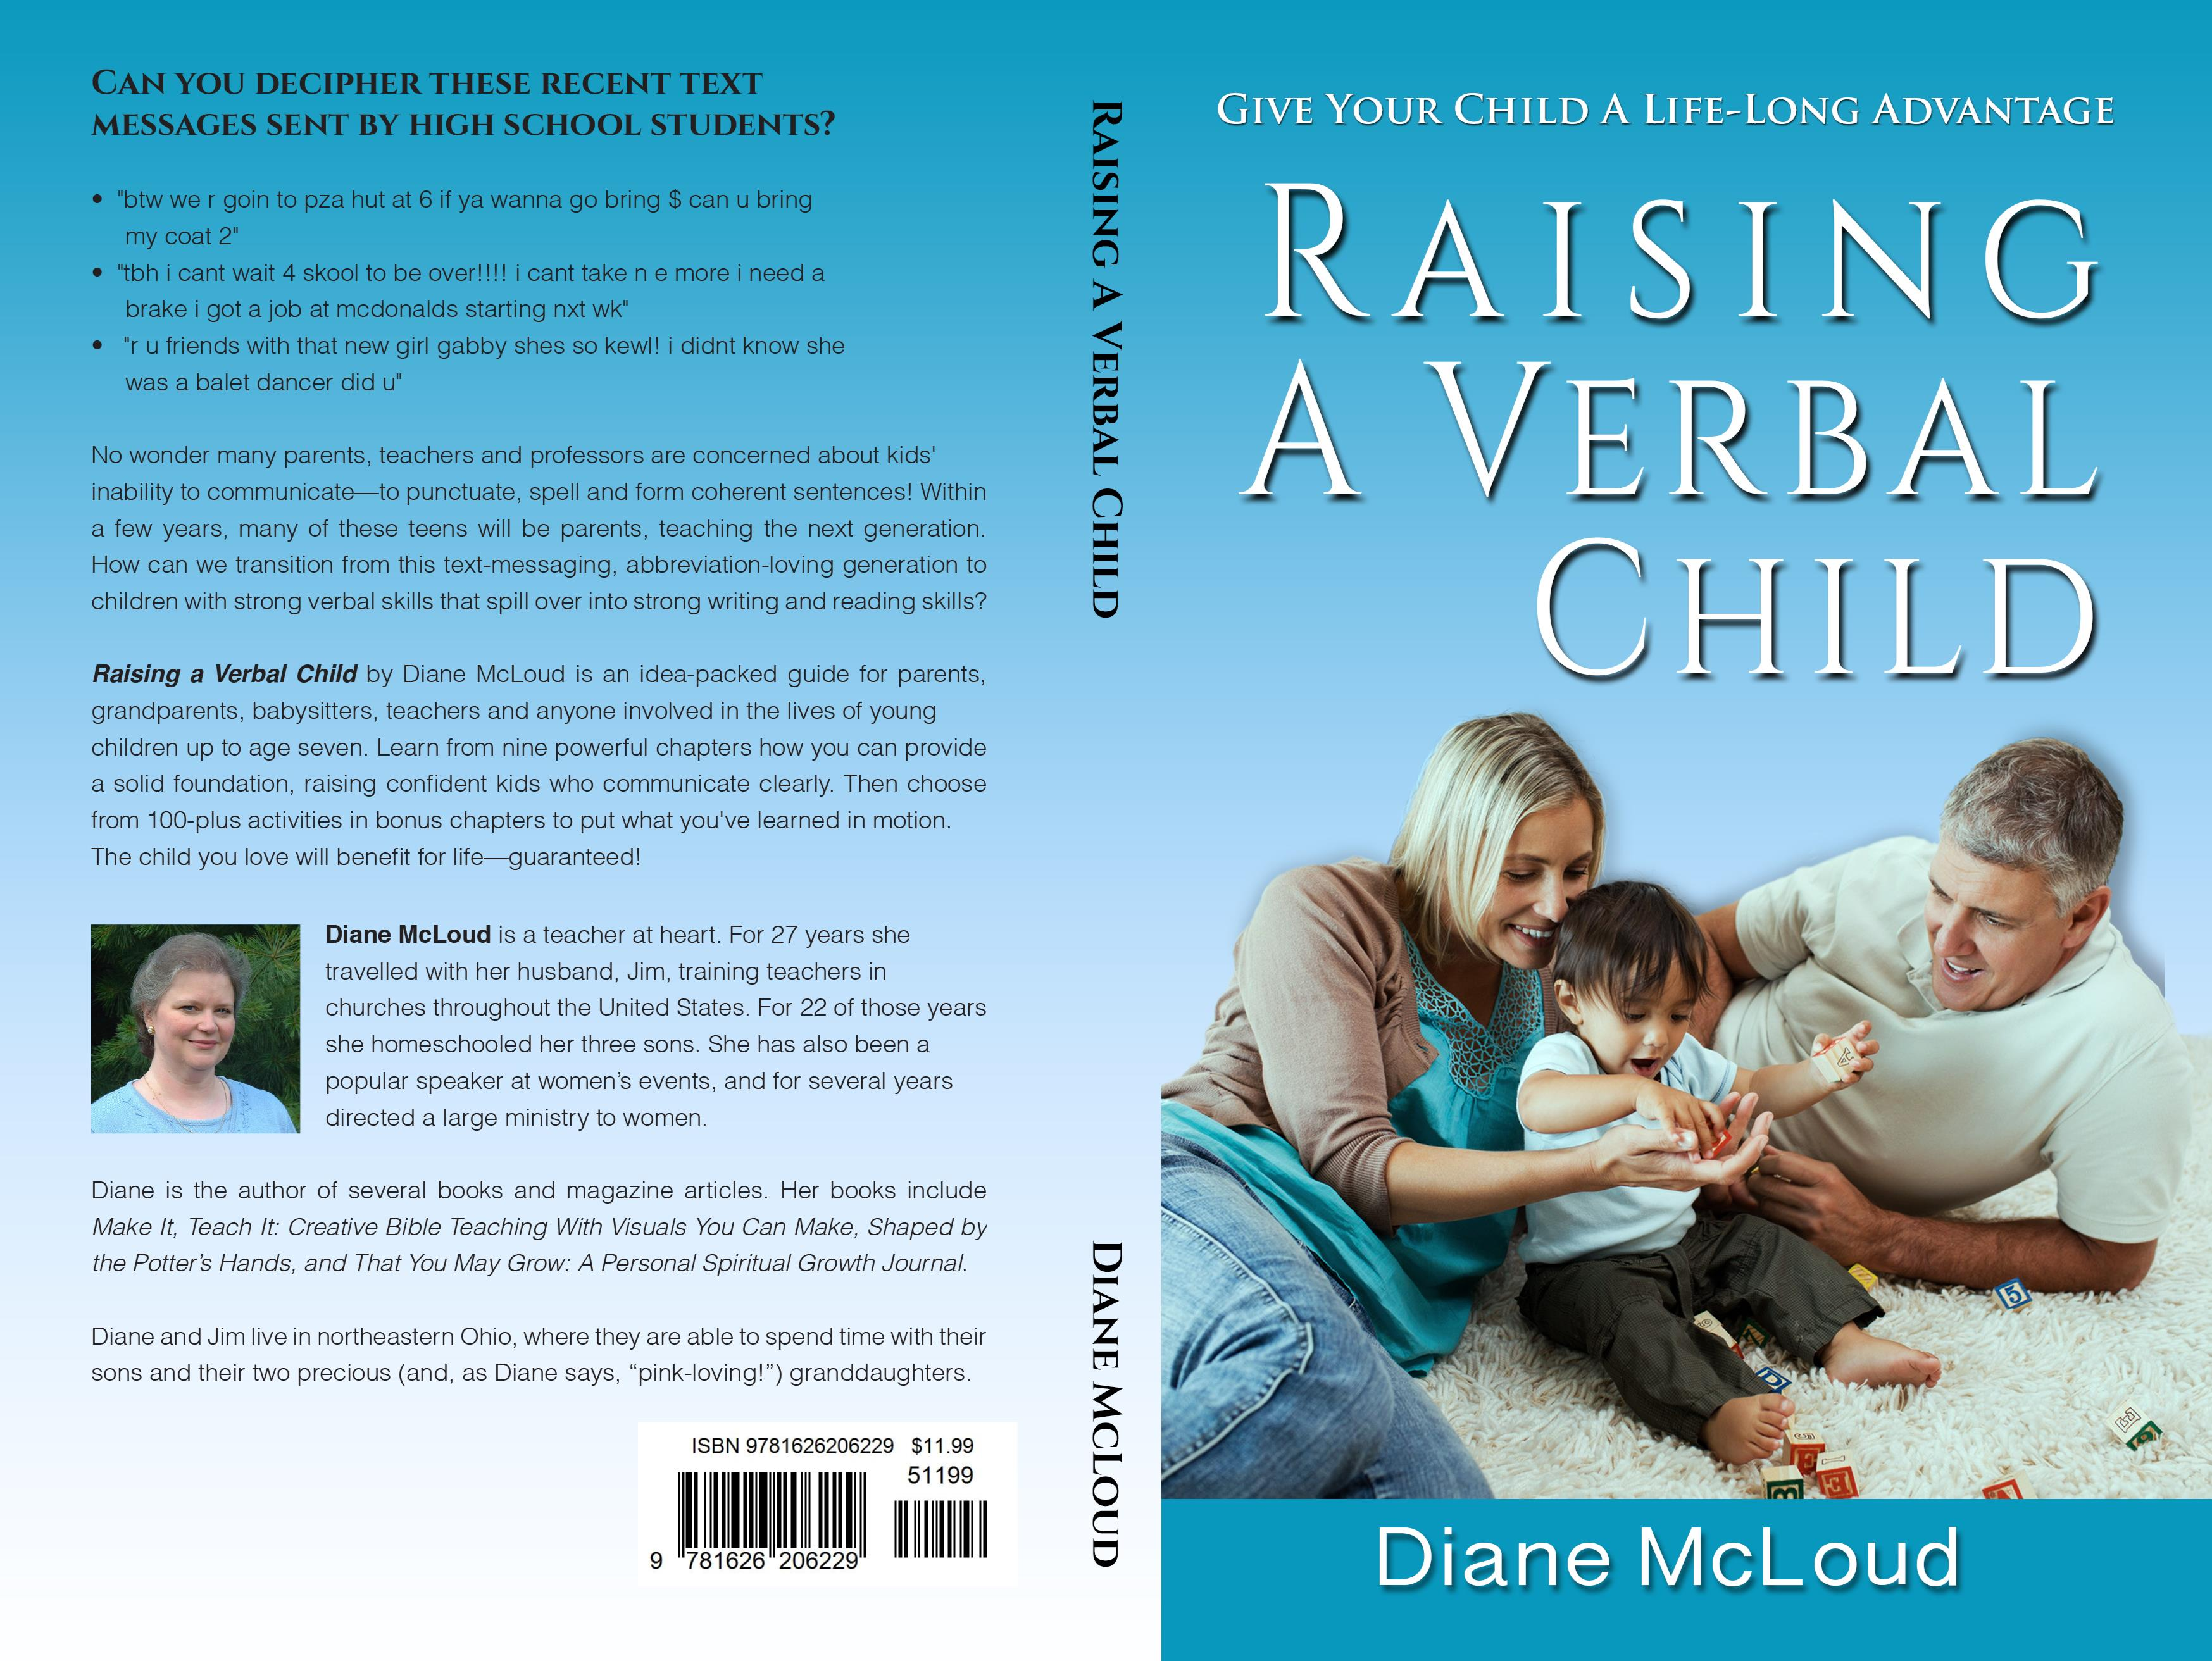 Raising A Verbal Child cover image